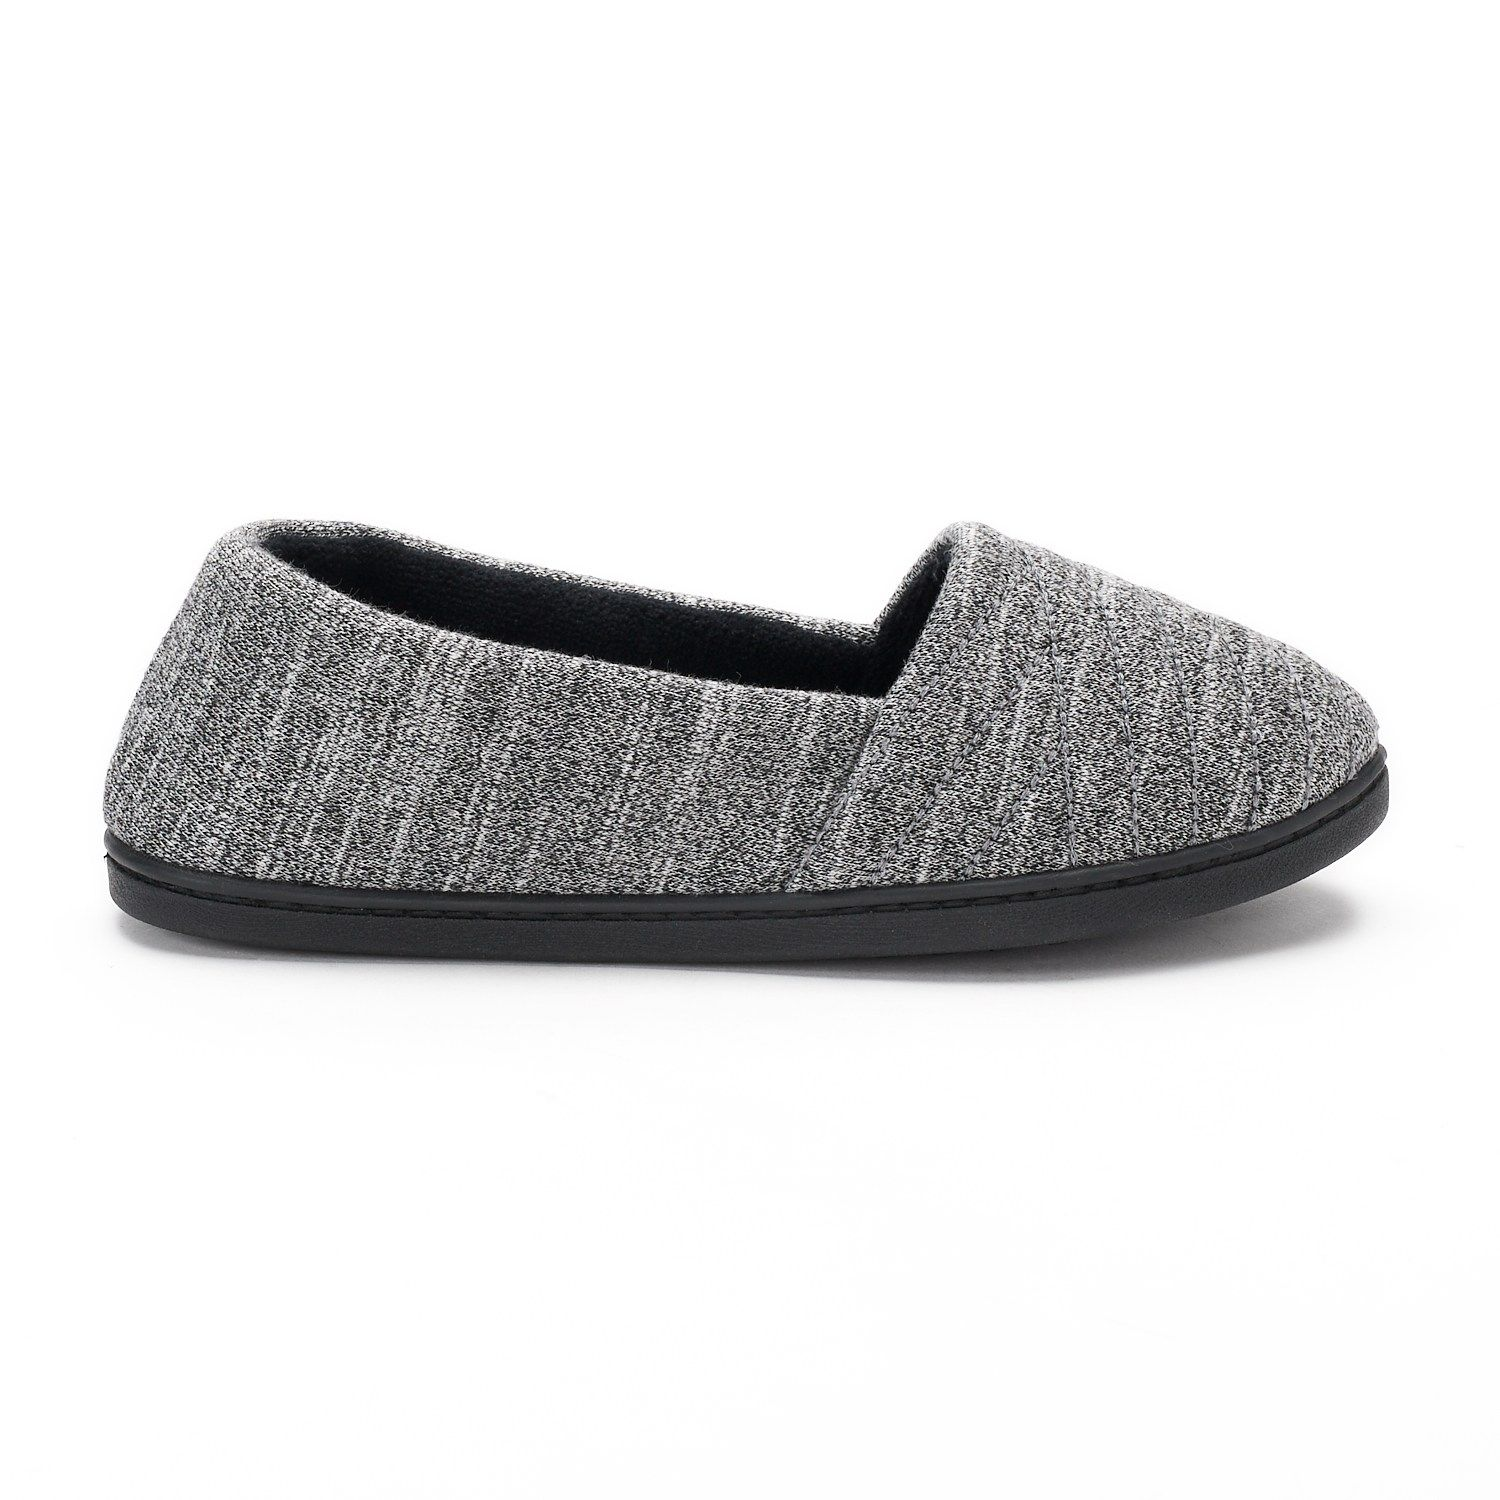 09bf8a38403fe8 Women s isotoner Andrea Space-Knit A-Line Slippers in 2019